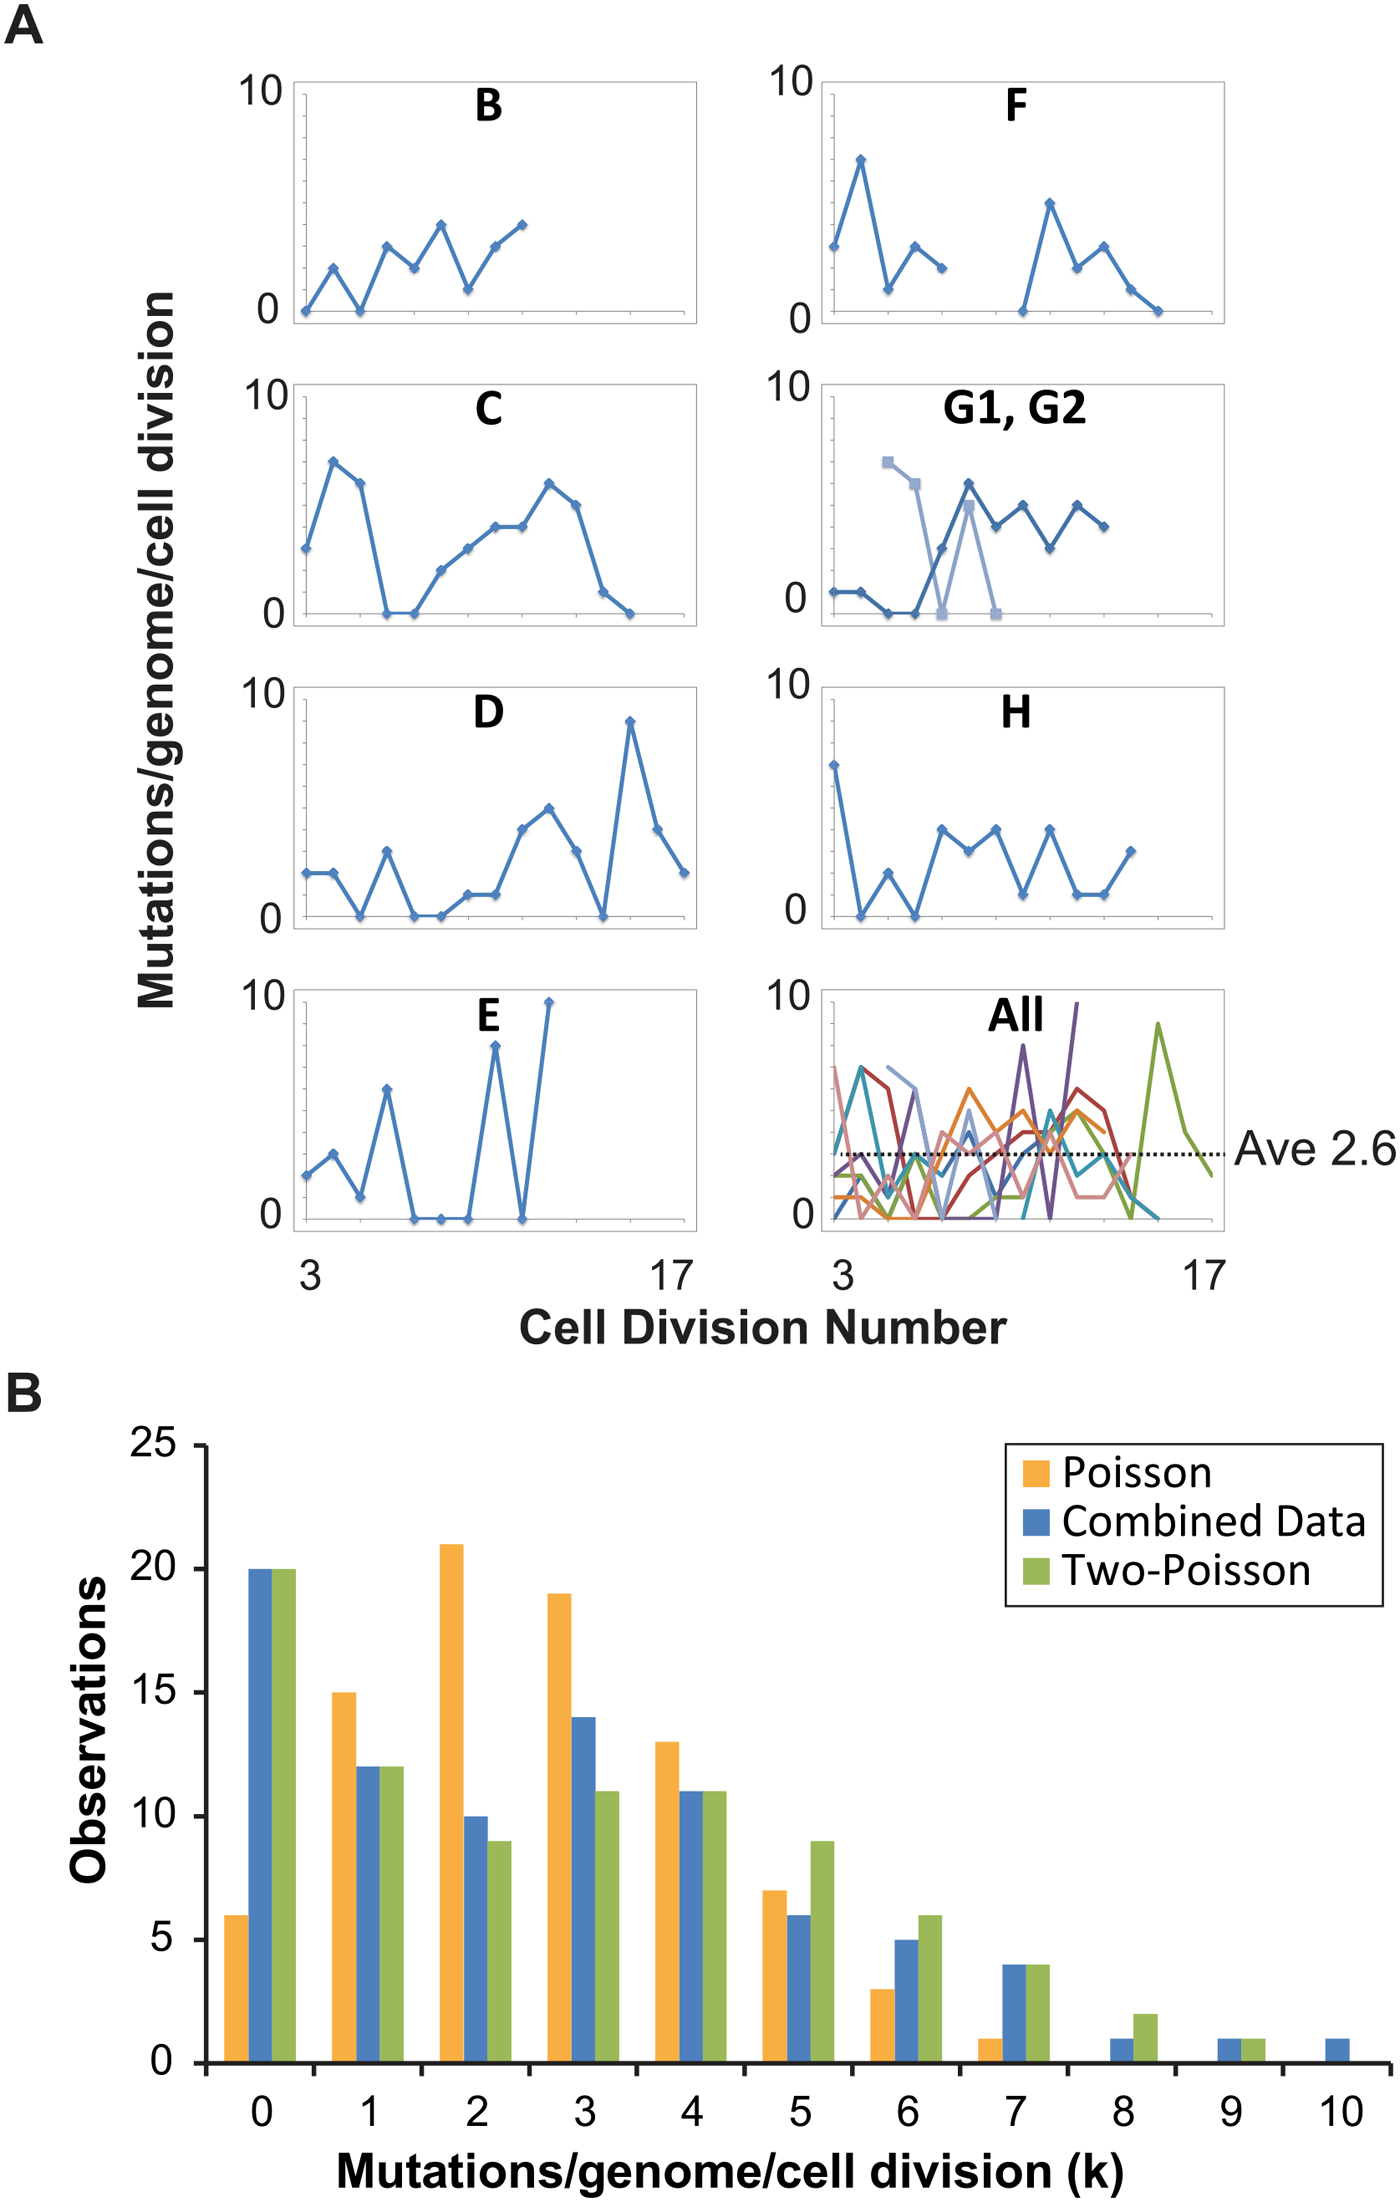 Distribution of single cell mutation counts in mother cells.